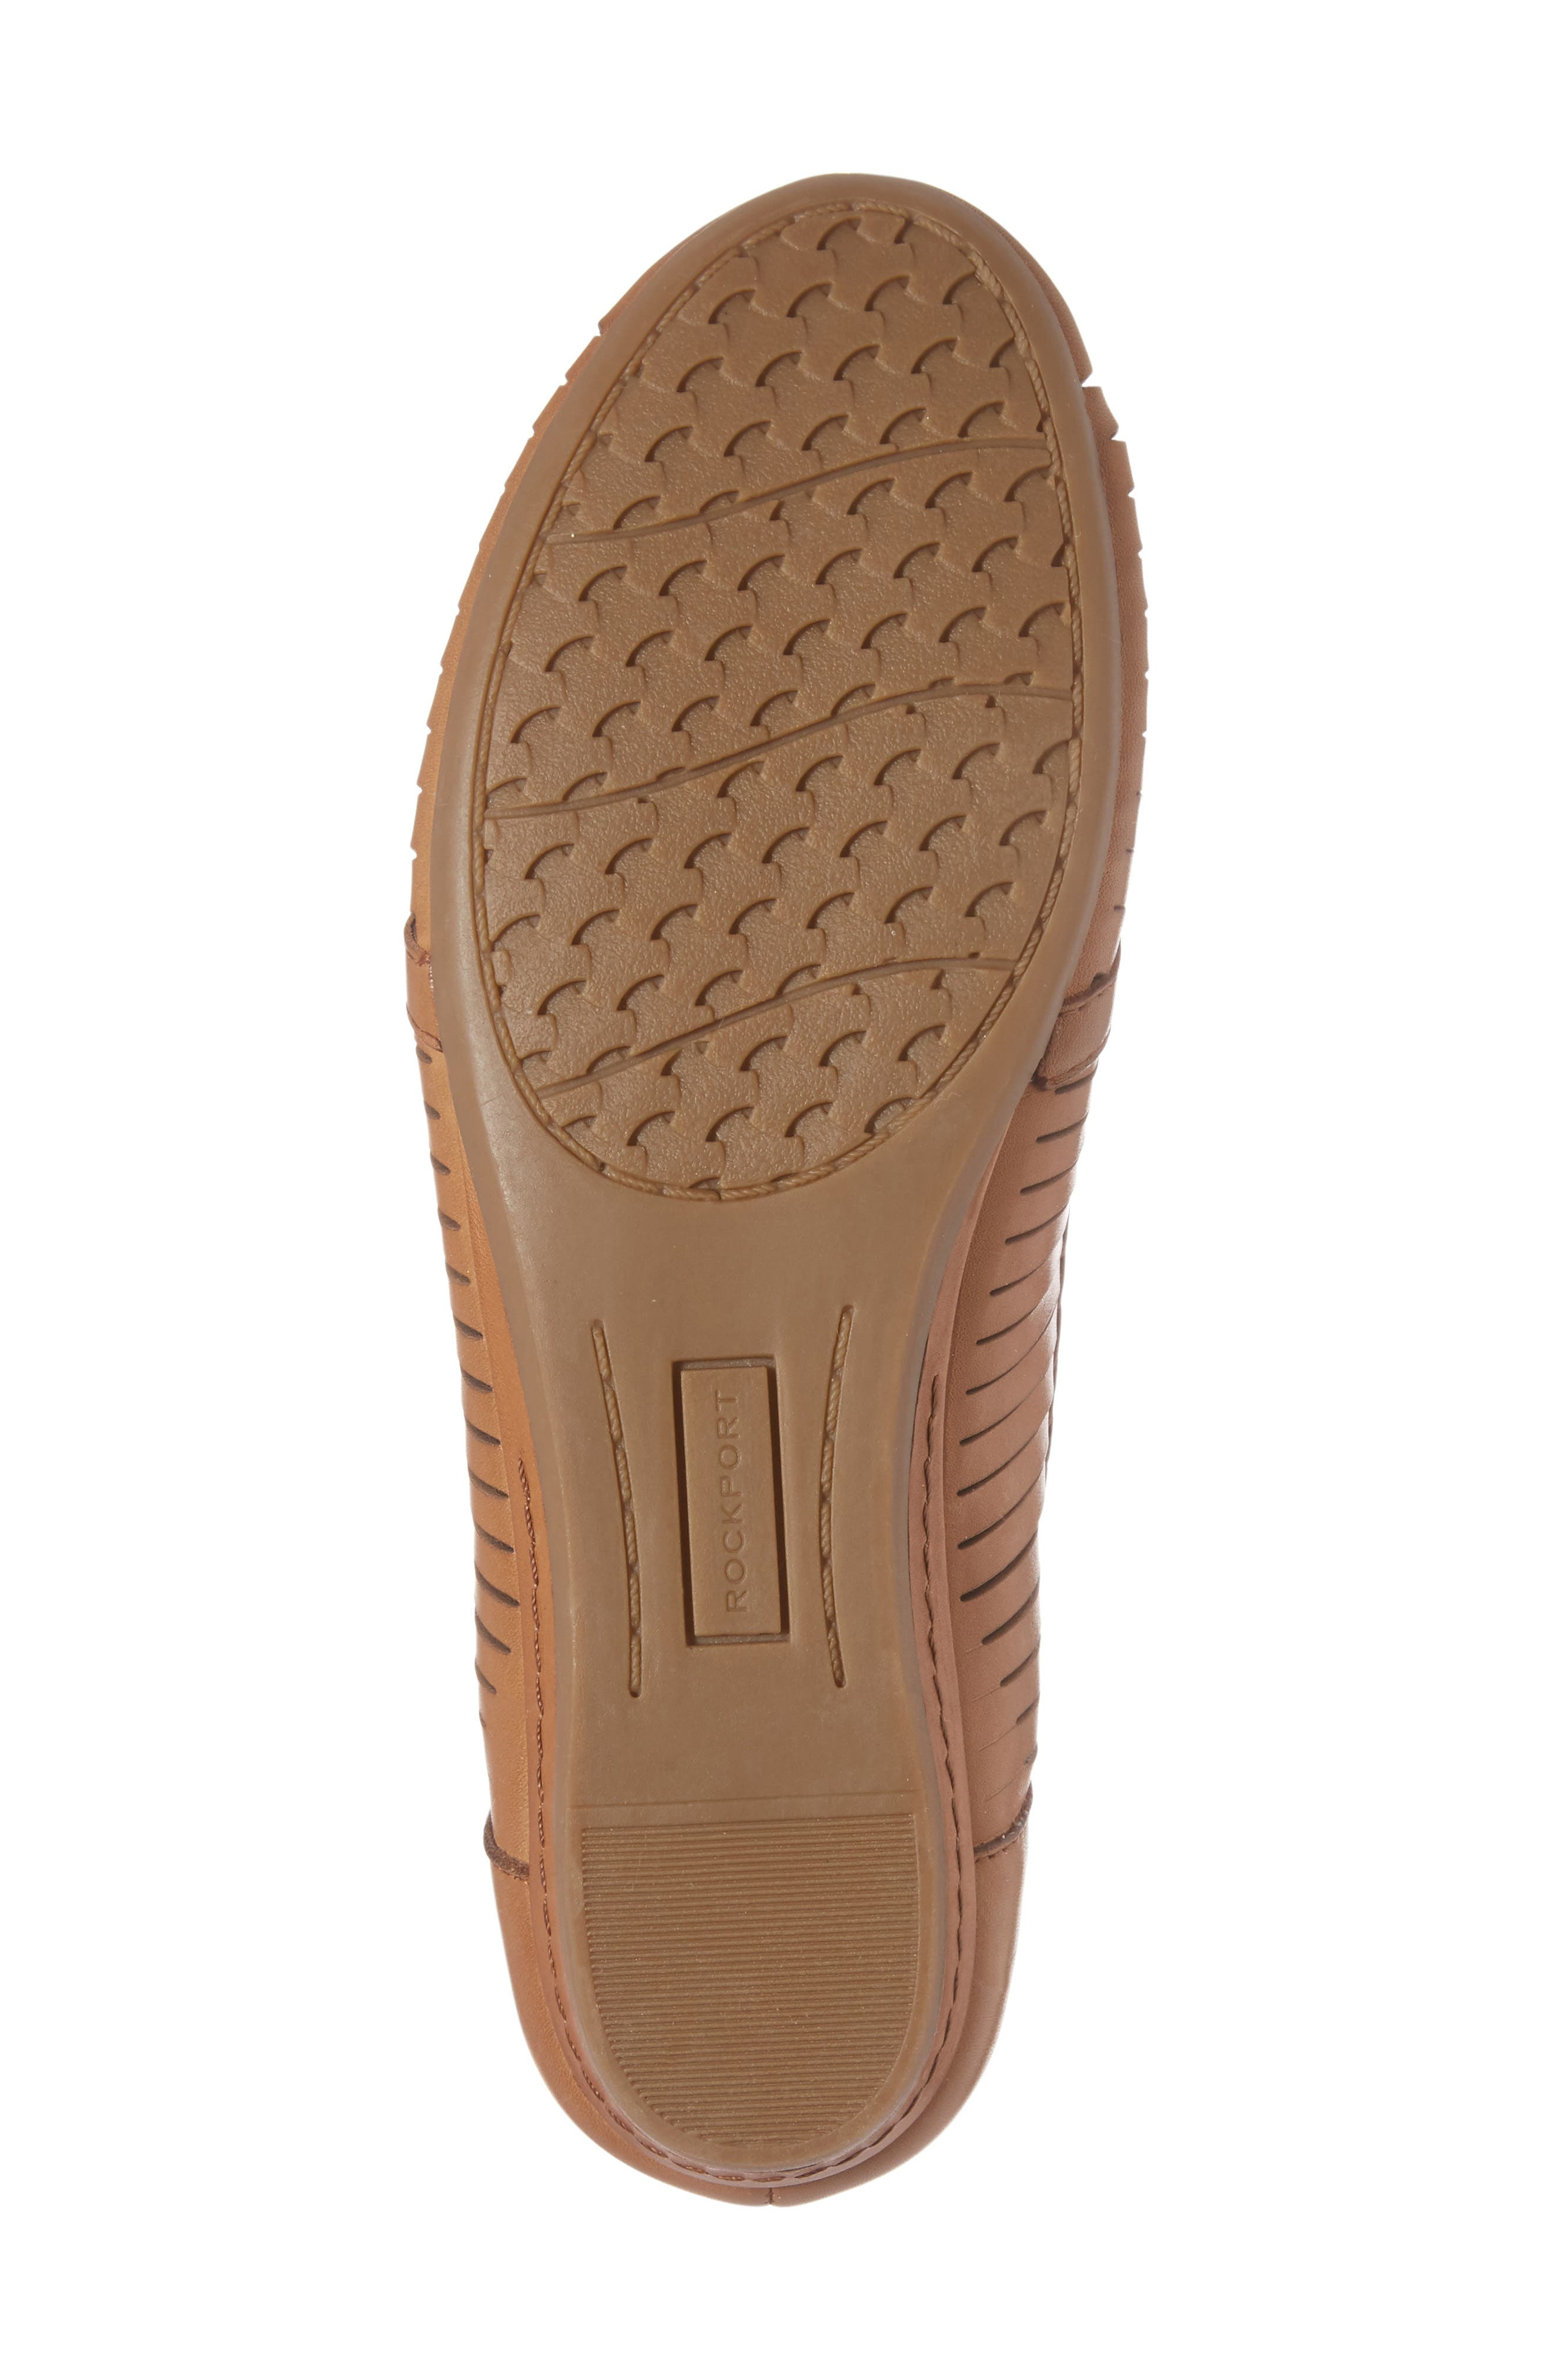 Galway Loafer,                             Alternate thumbnail 6, color,                             Tan Multi Leather